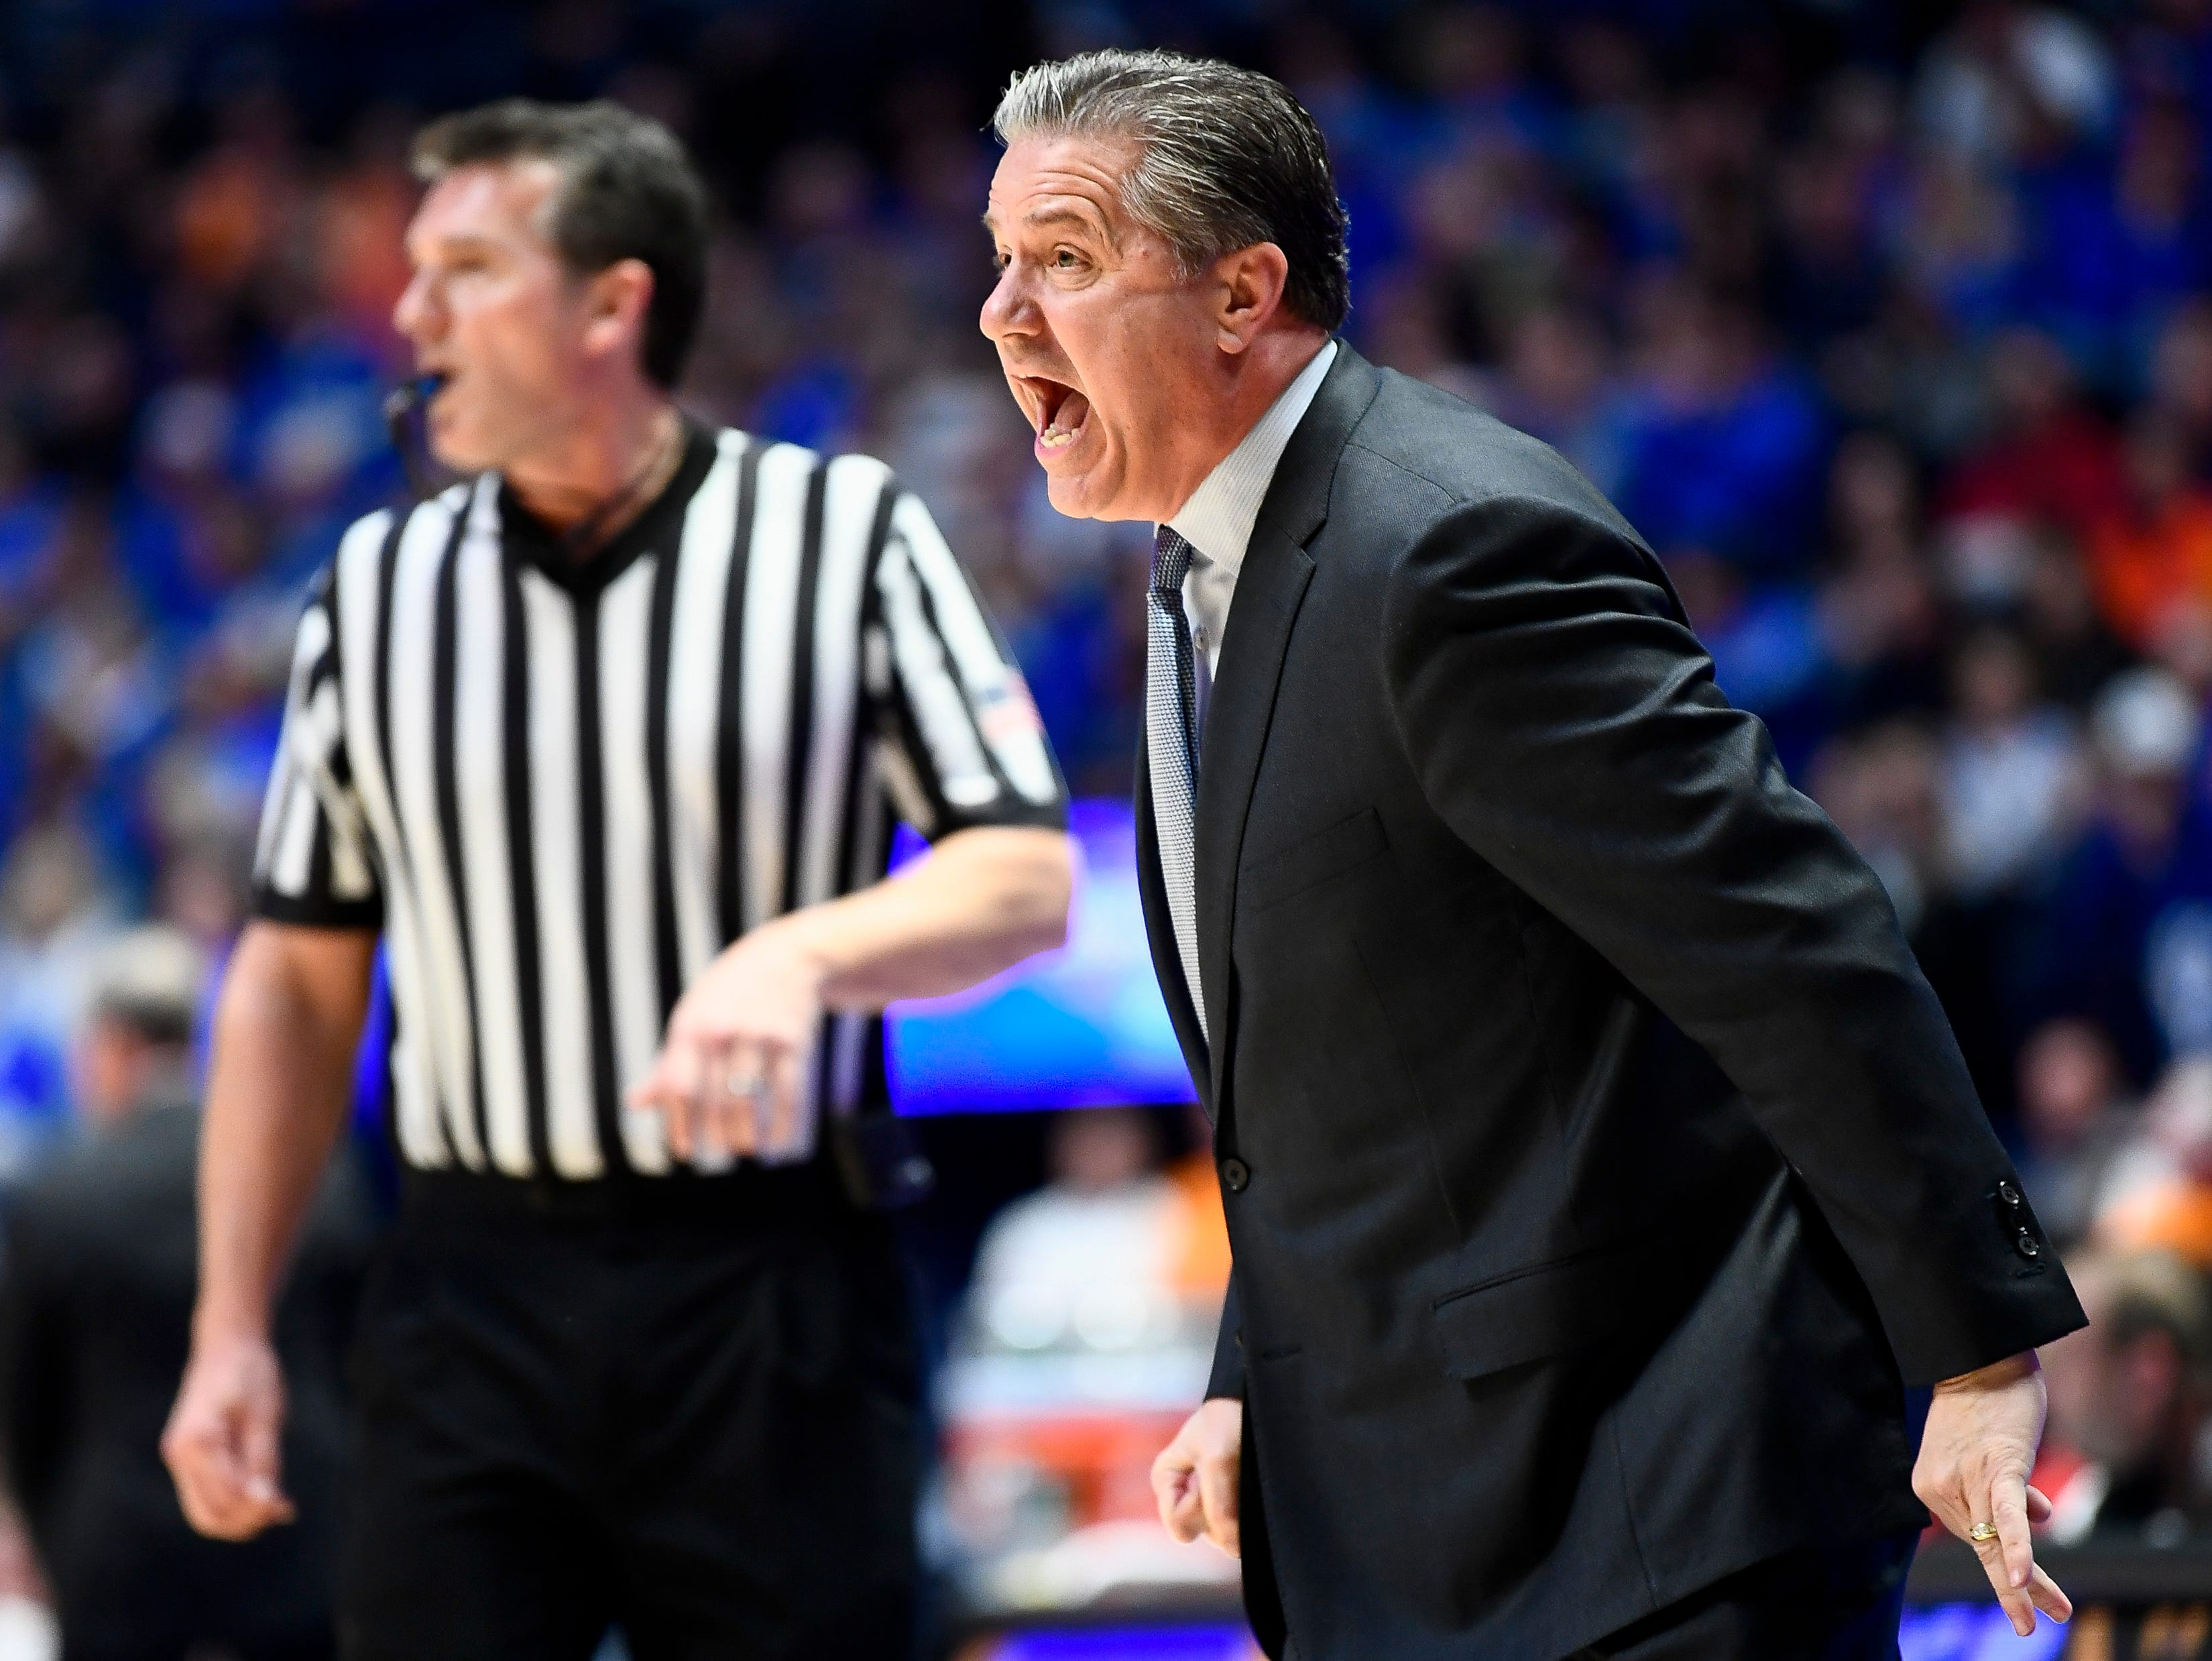 Kentucky head coach John Calipari reacts during the first half of the SEC Men's Basketball Tournament semifinal game against Tennessee at Bridgestone Arena in Nashville, Tenn., Saturday, March 16, 2019.